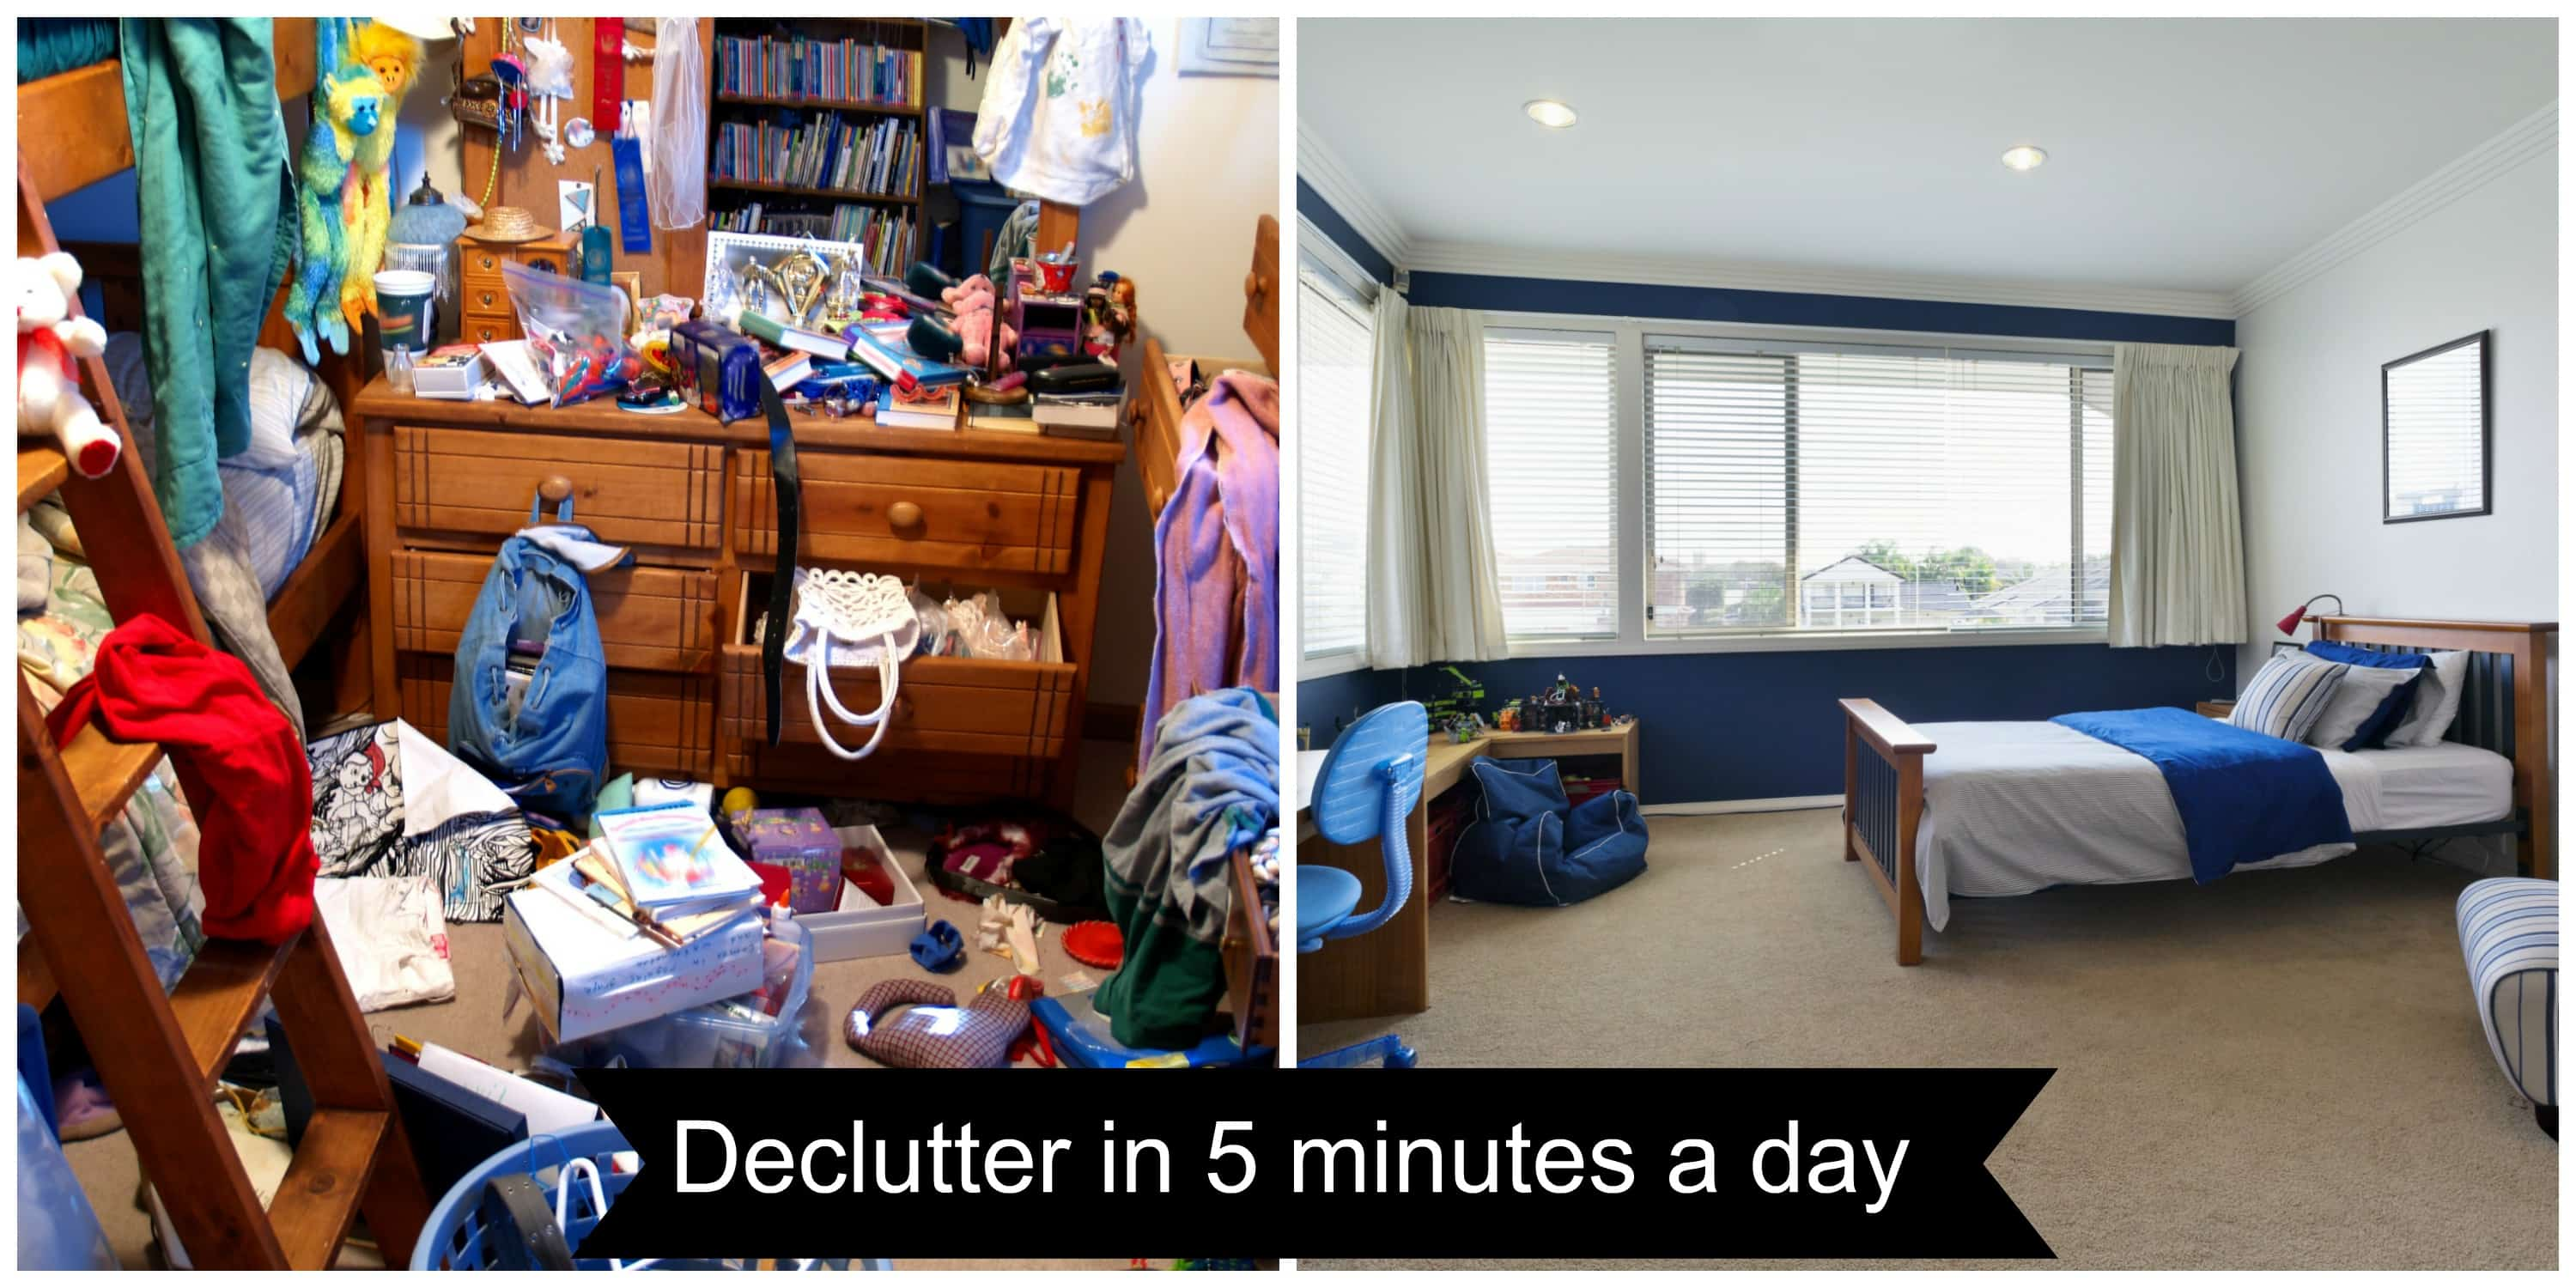 Declutter Your Home in 5 Minutes a Day - The Organized Mom